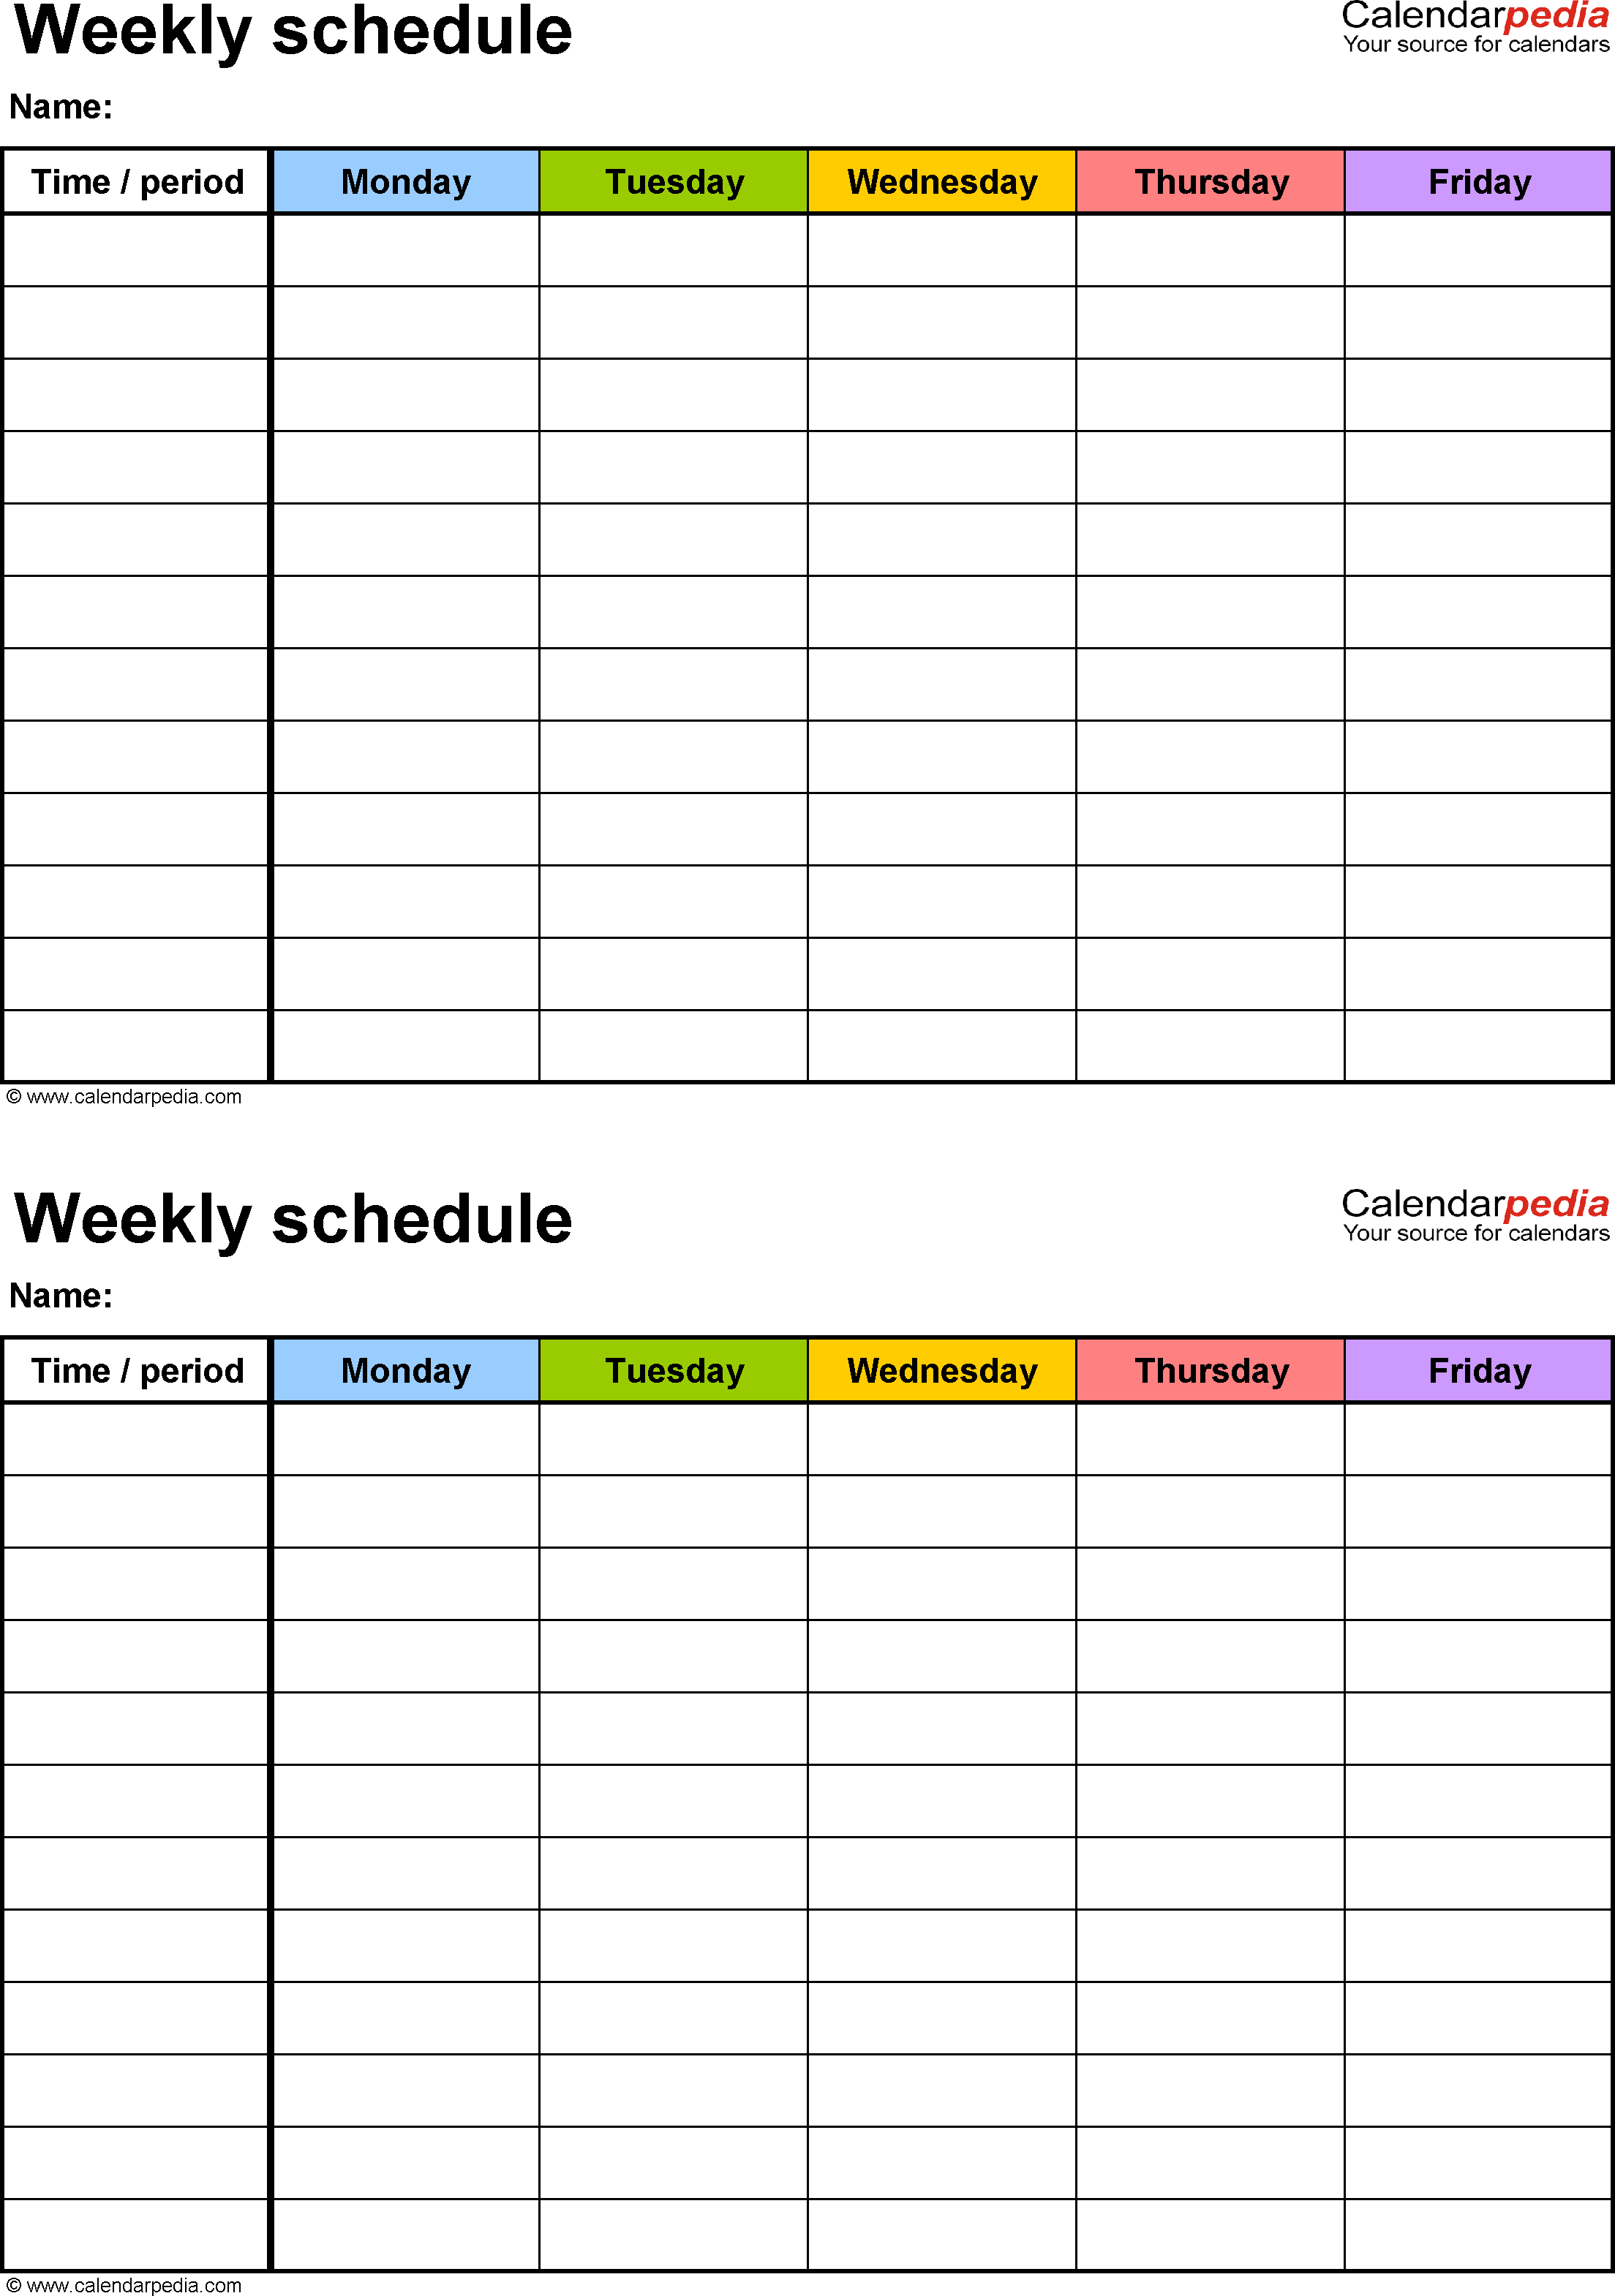 Weekly schedule template for excel version 3 2 schedules for 3 day calendar template